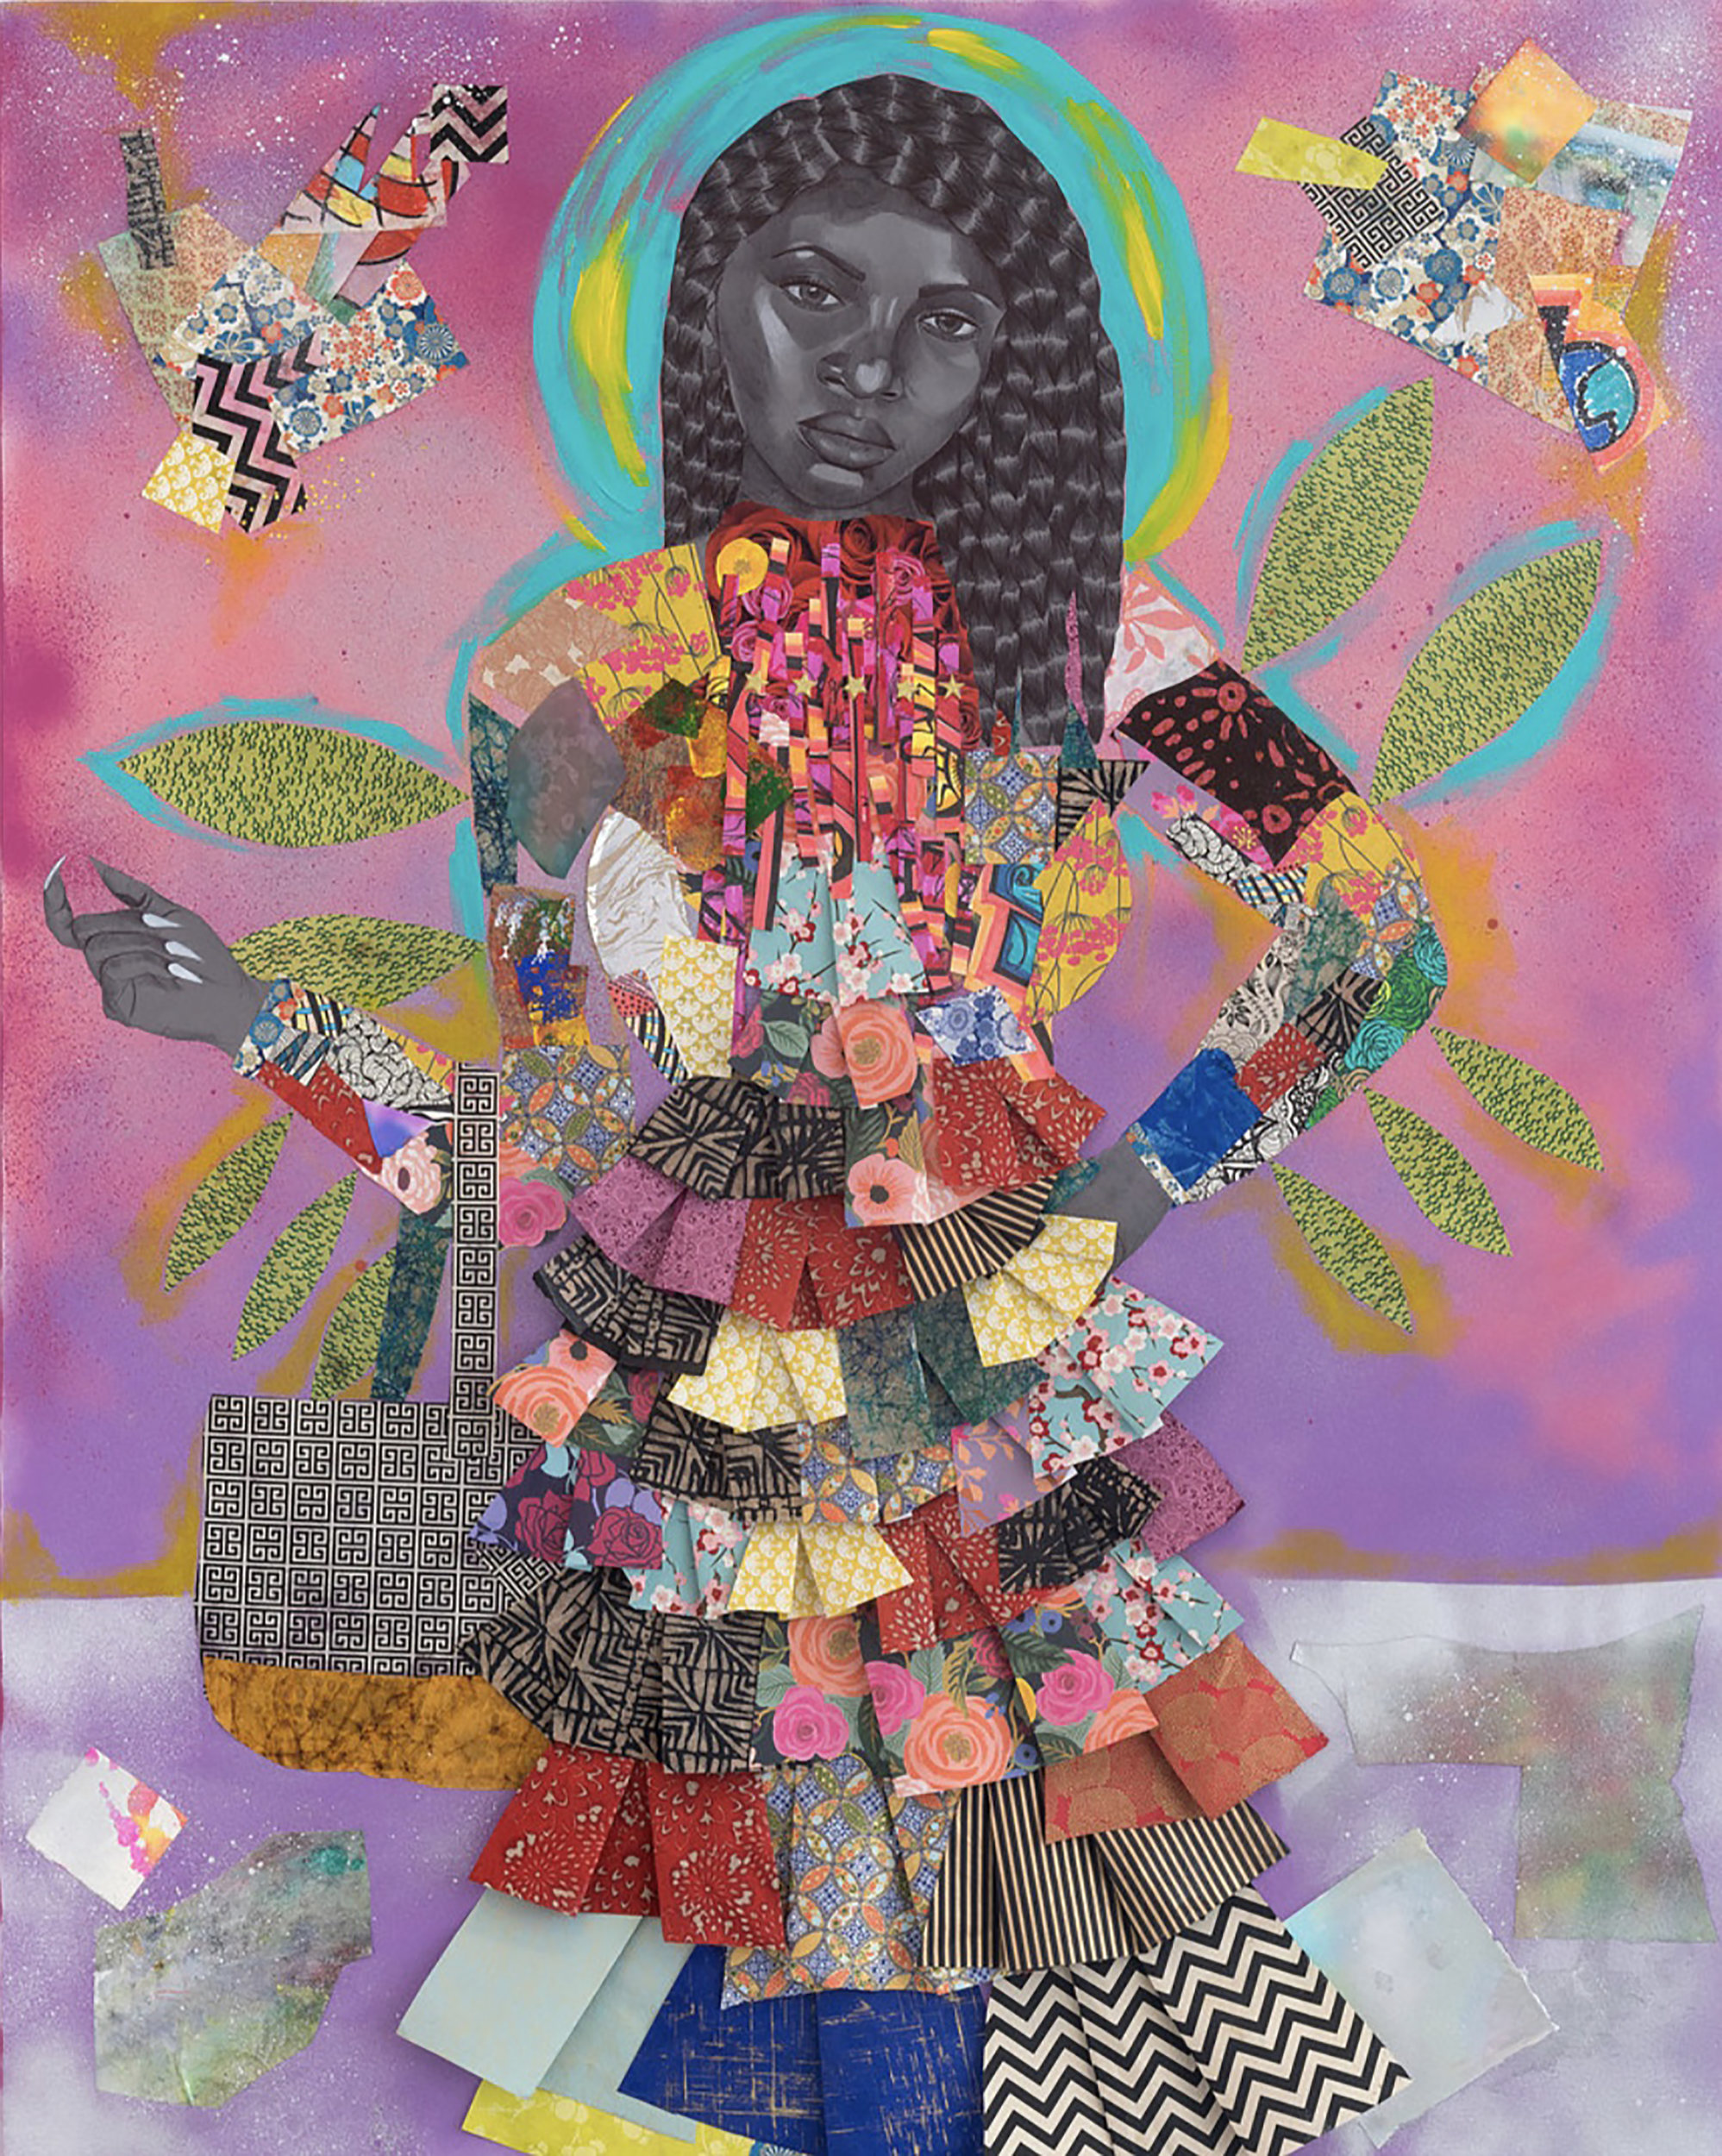 """""""Archetype of a 5 Star,"""" 2018, 60 x 48 in. Acrylic, spray paint, glitter, ink and cut paper collage on canvas. Courtesy of Kravets/Wehby Gallery and the artist."""